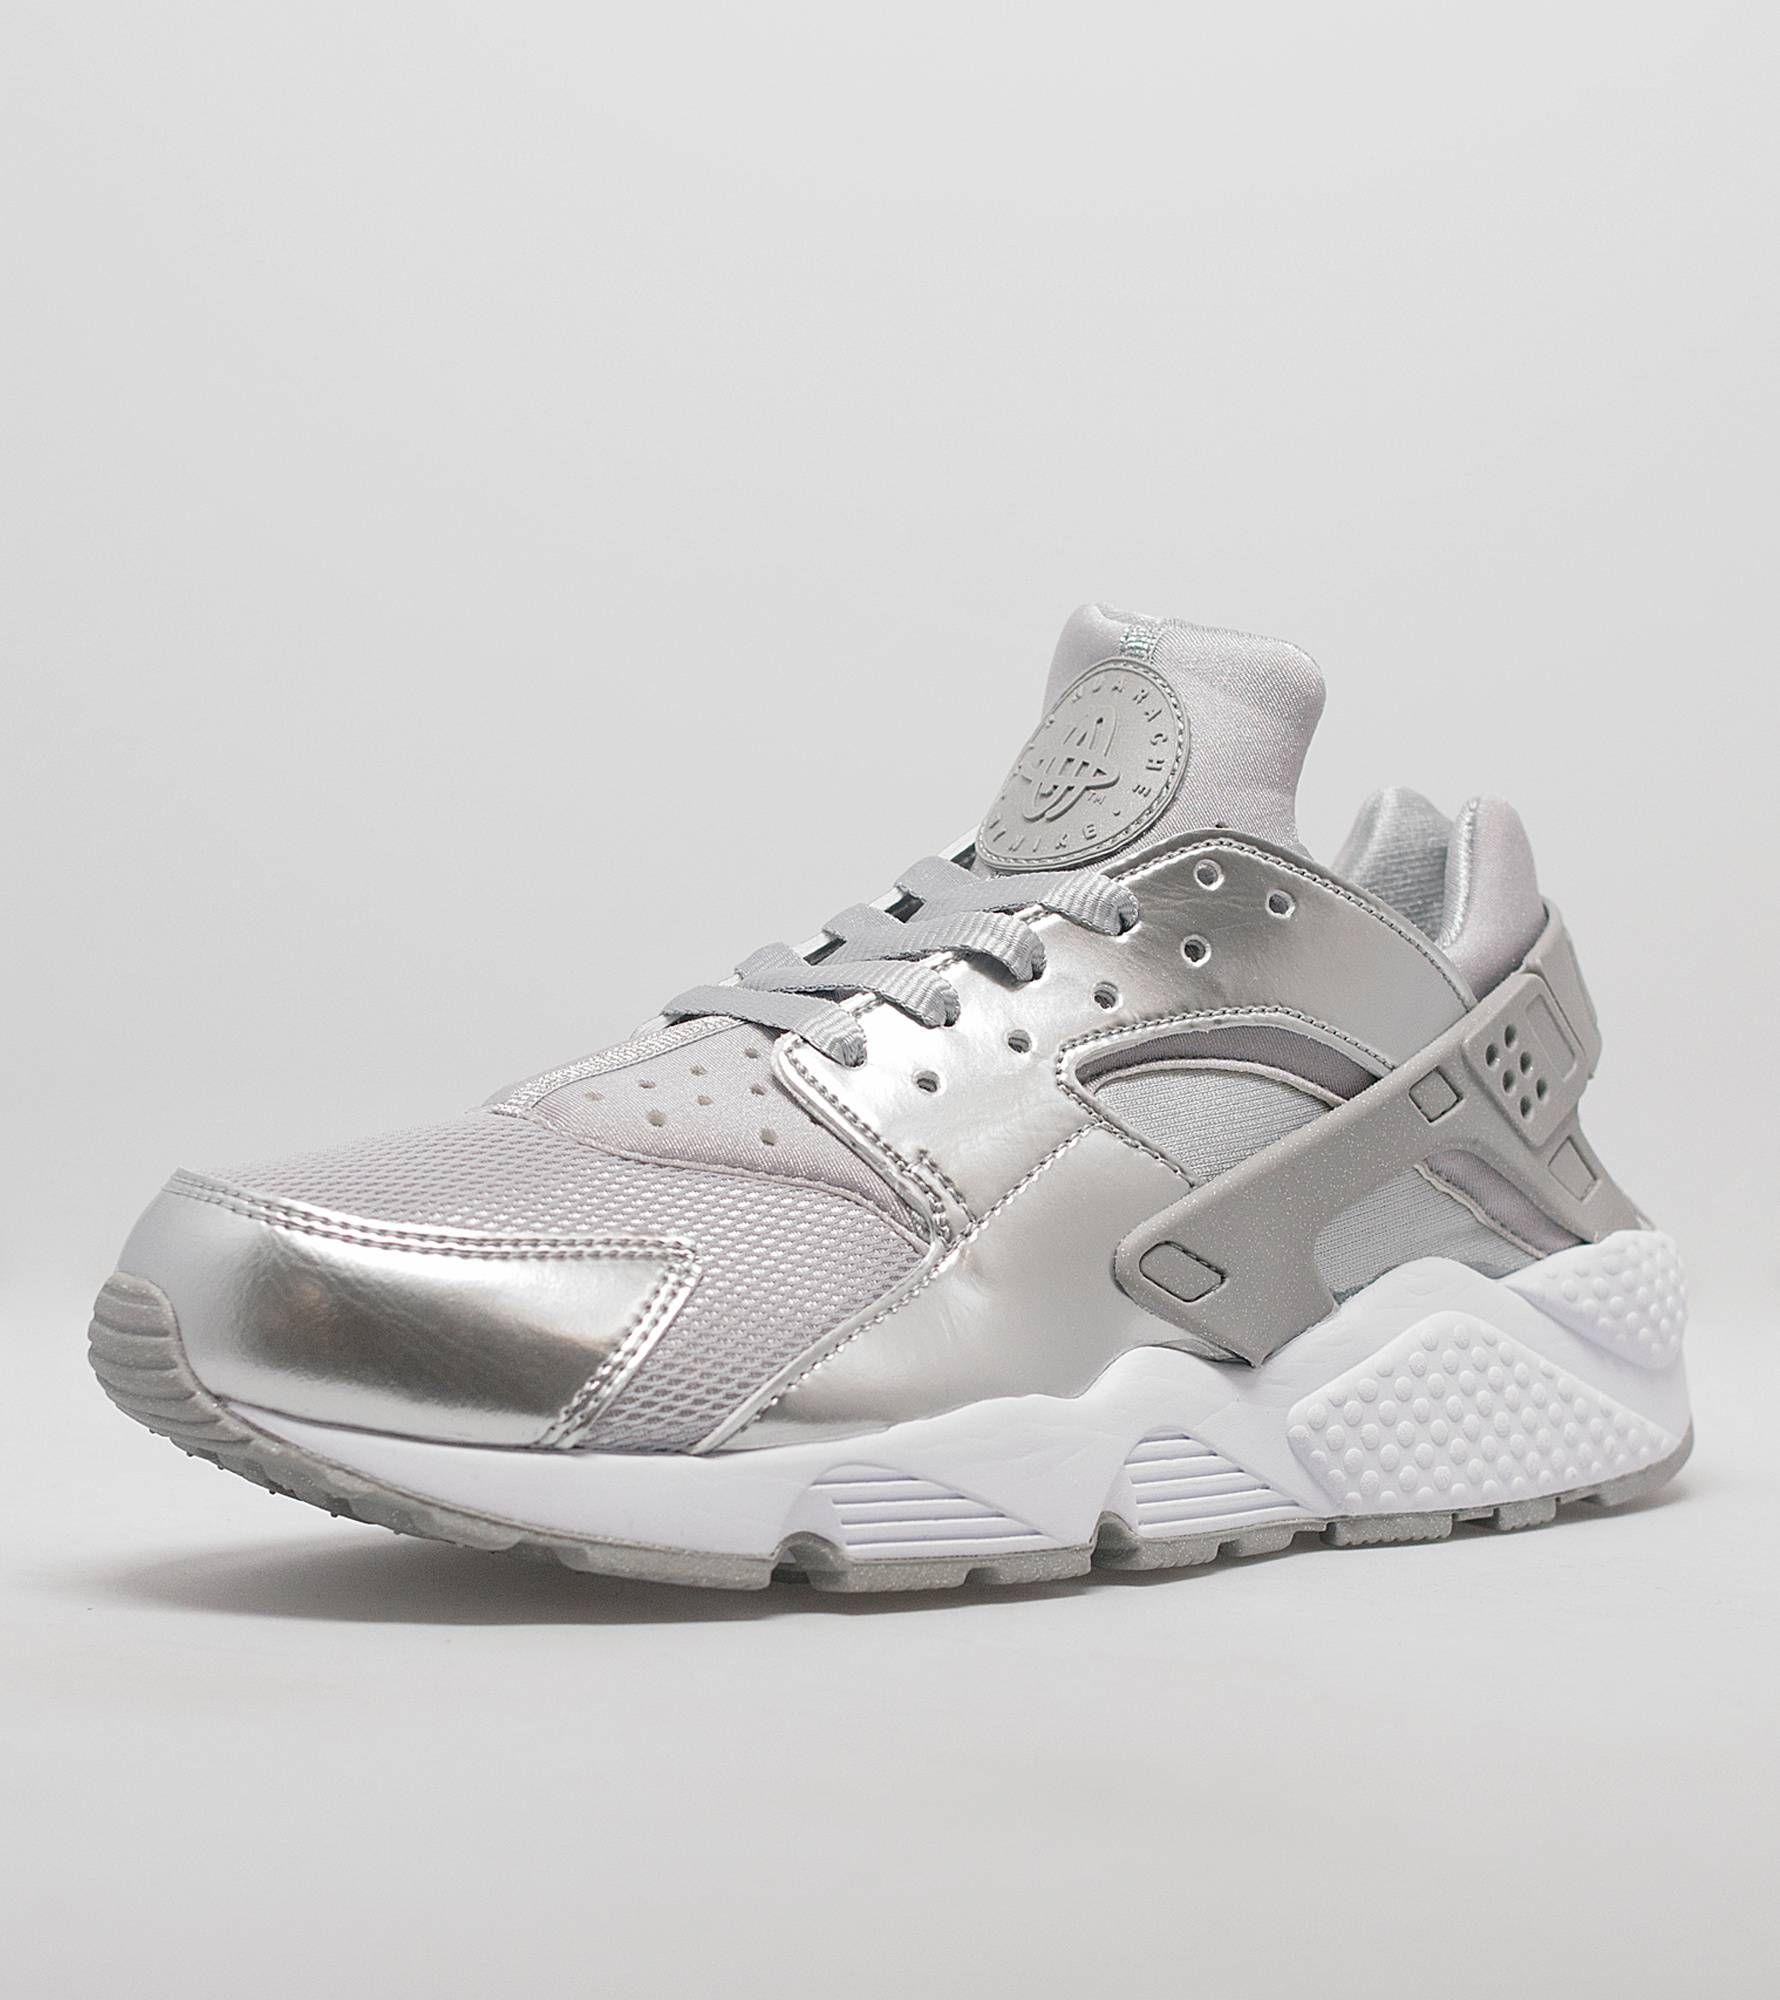 the best attitude 999d1 f7dd7 We offer the latest   greatest mens footwear, shop online for NikeWomen s  Air Huarache LE  Metallic Silver at Size  FREE DELIVERY on orders   Size 7   -----)